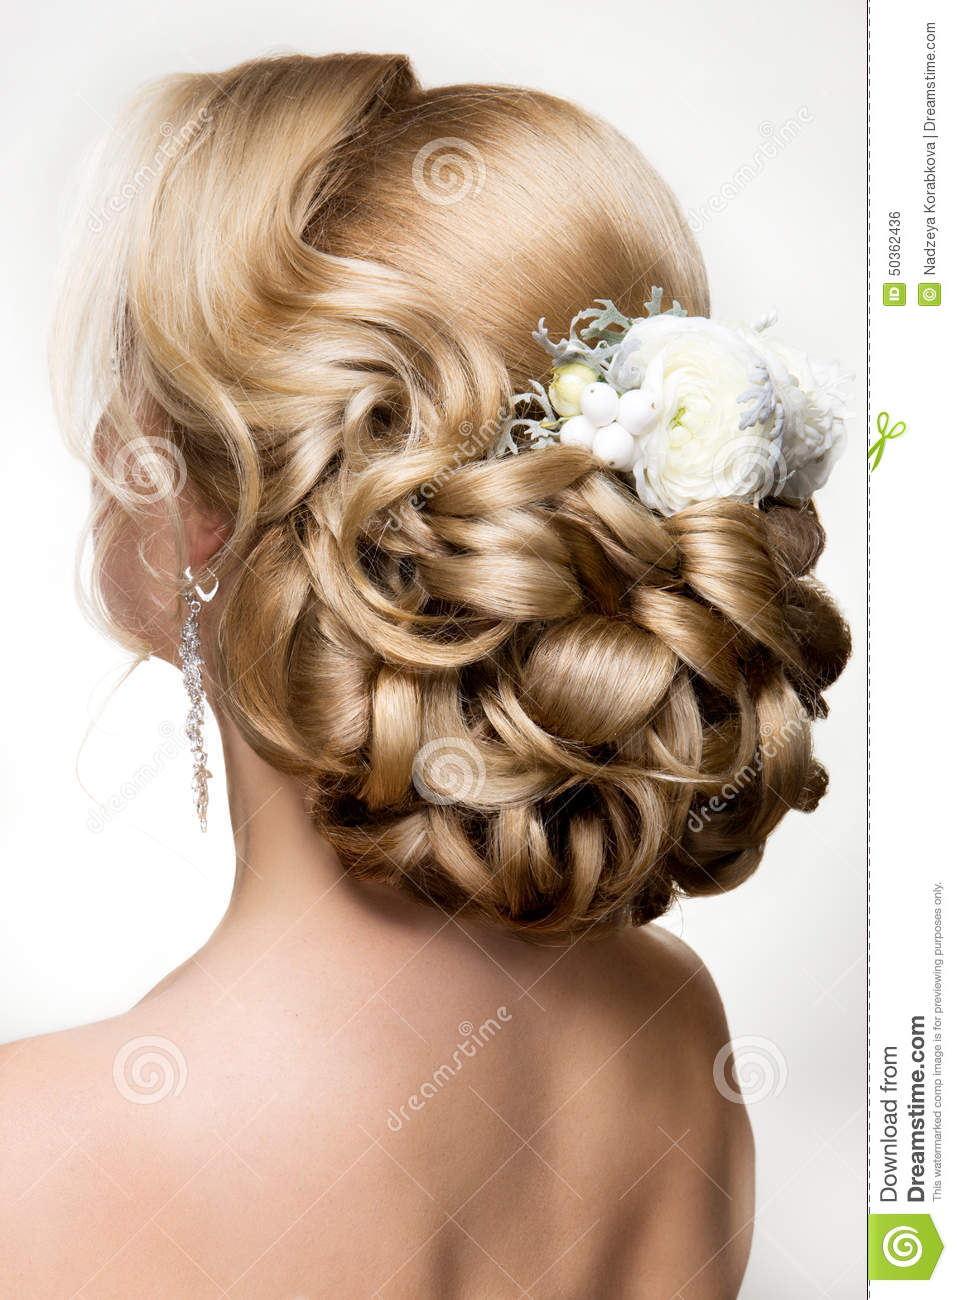 Beautiful Woman With Gold MakeupBeautiful Bride With Fashion Wedding Hairstyle Stock Photo